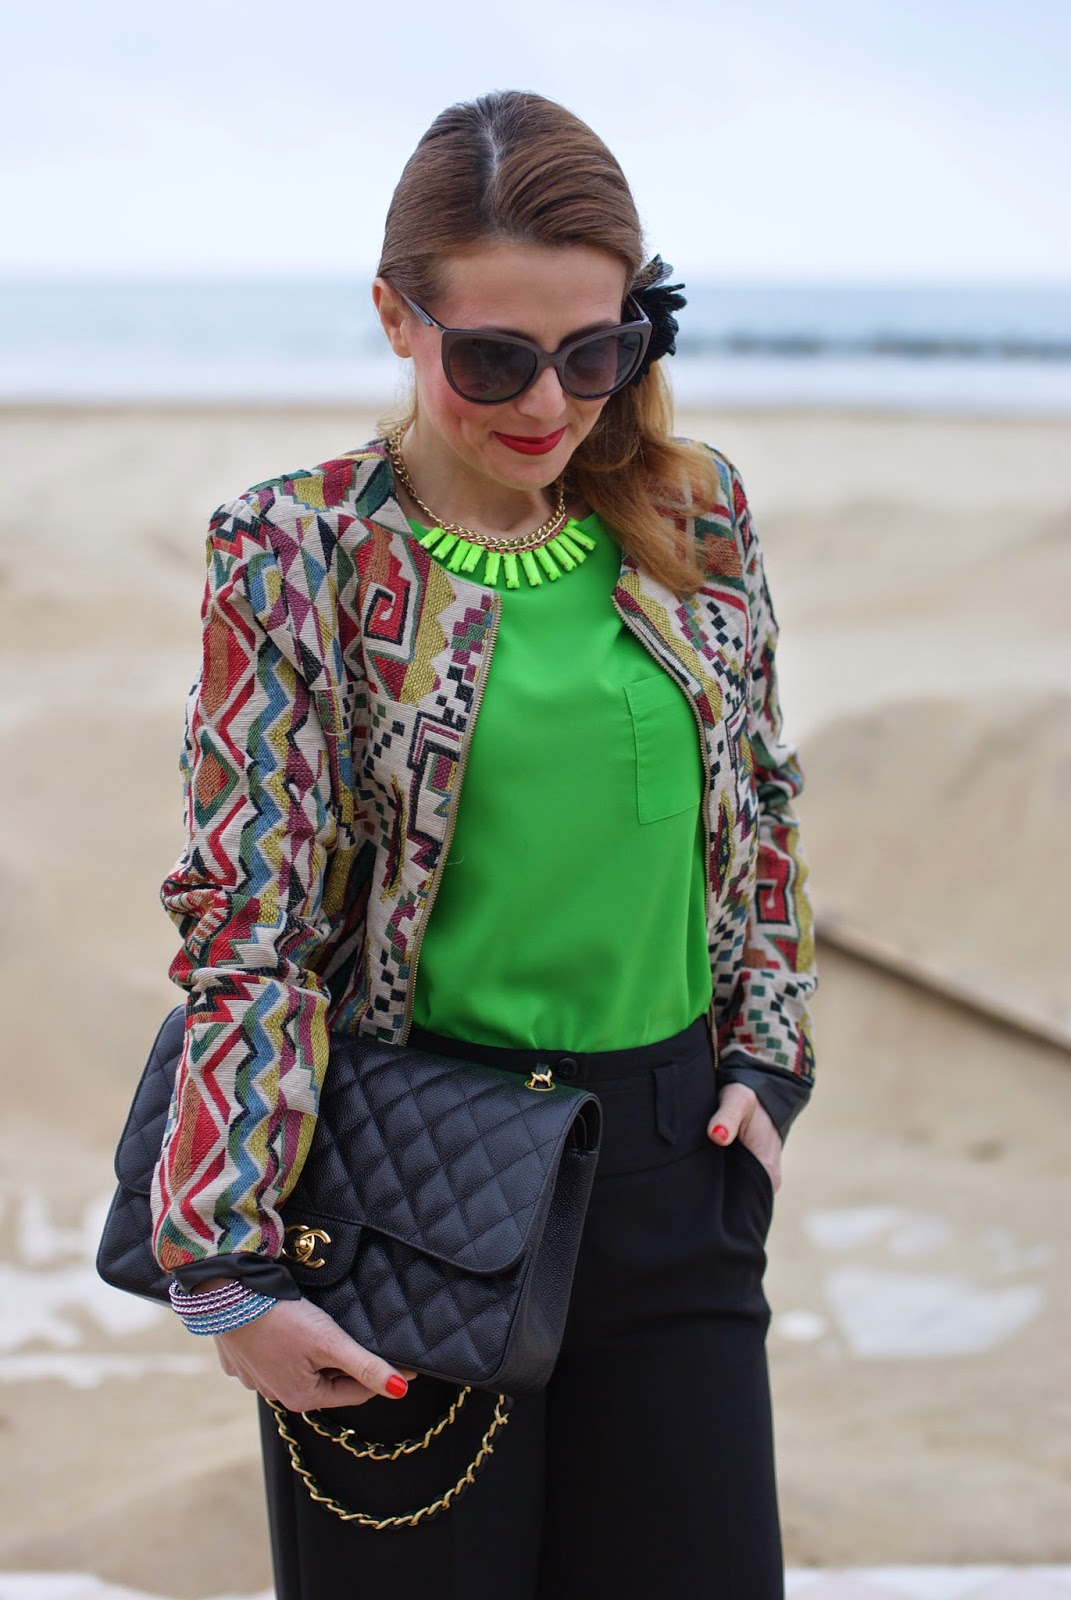 Chanel 2.55 classic flap bag, Paramita jacket, bomber jacket, Moliabal elastico capelli, palazzo pants, Lunatic pantaloni, sided ponytail, Fashion and Cookies fashion blog, fashion blogger